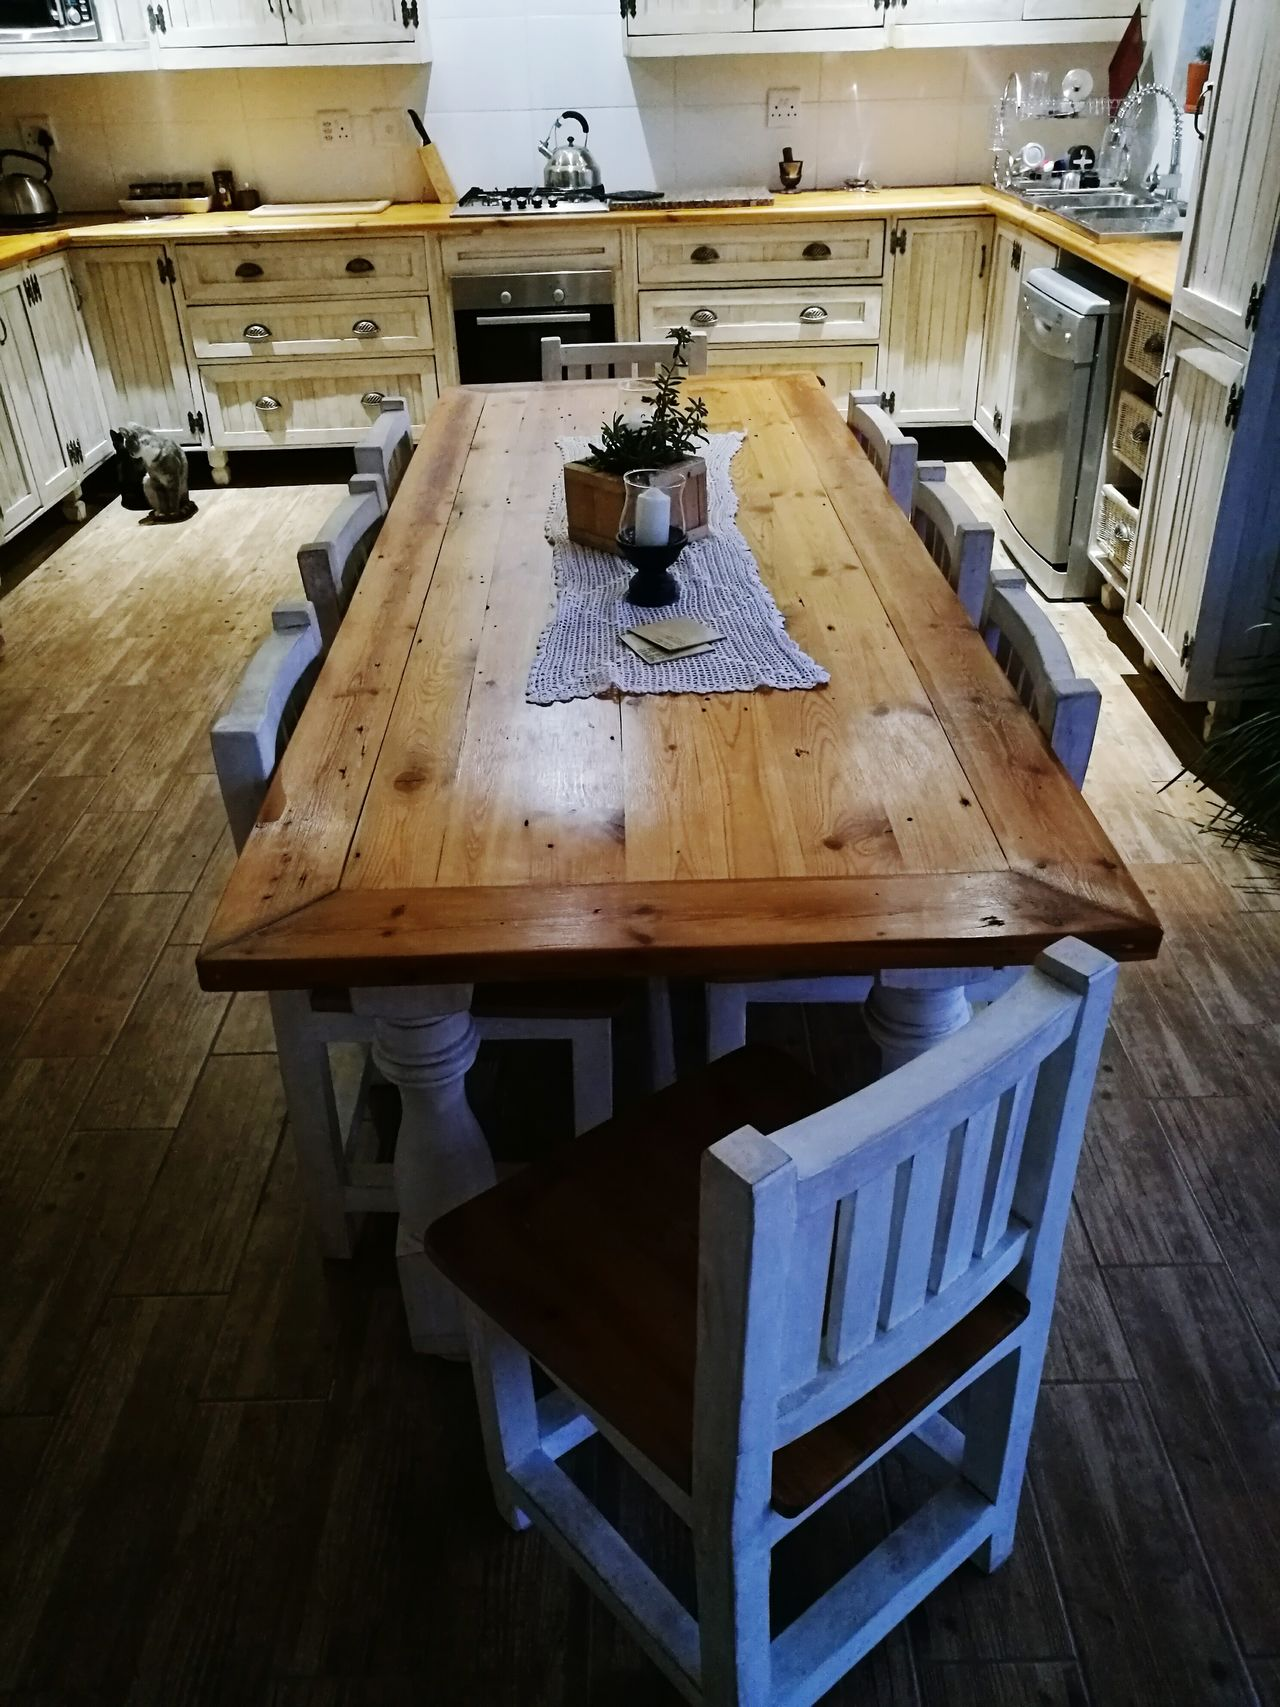 Farmstyle Kitchen Indoors  No People Close-up Day Chair Old-fashioned Tablet Tables And Chairs Tablecloth Kettle Cupboards Wood Surface Raw Wood Farmhouse Kitchen Life